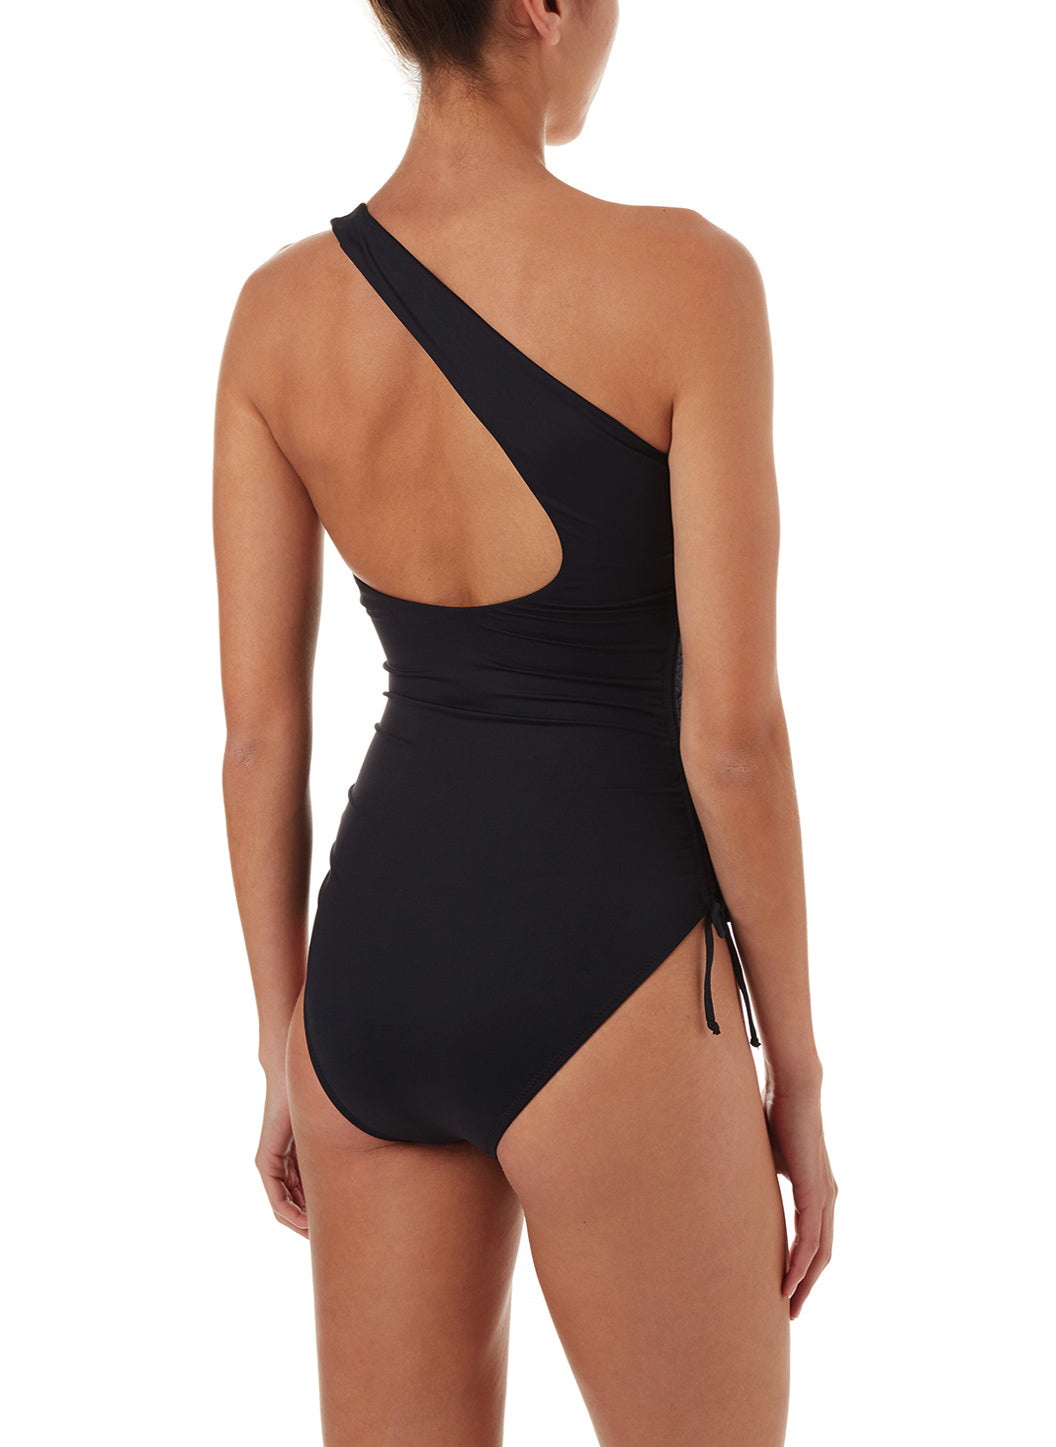 Polynesia Black One Shoulder Ruched Swimsuit